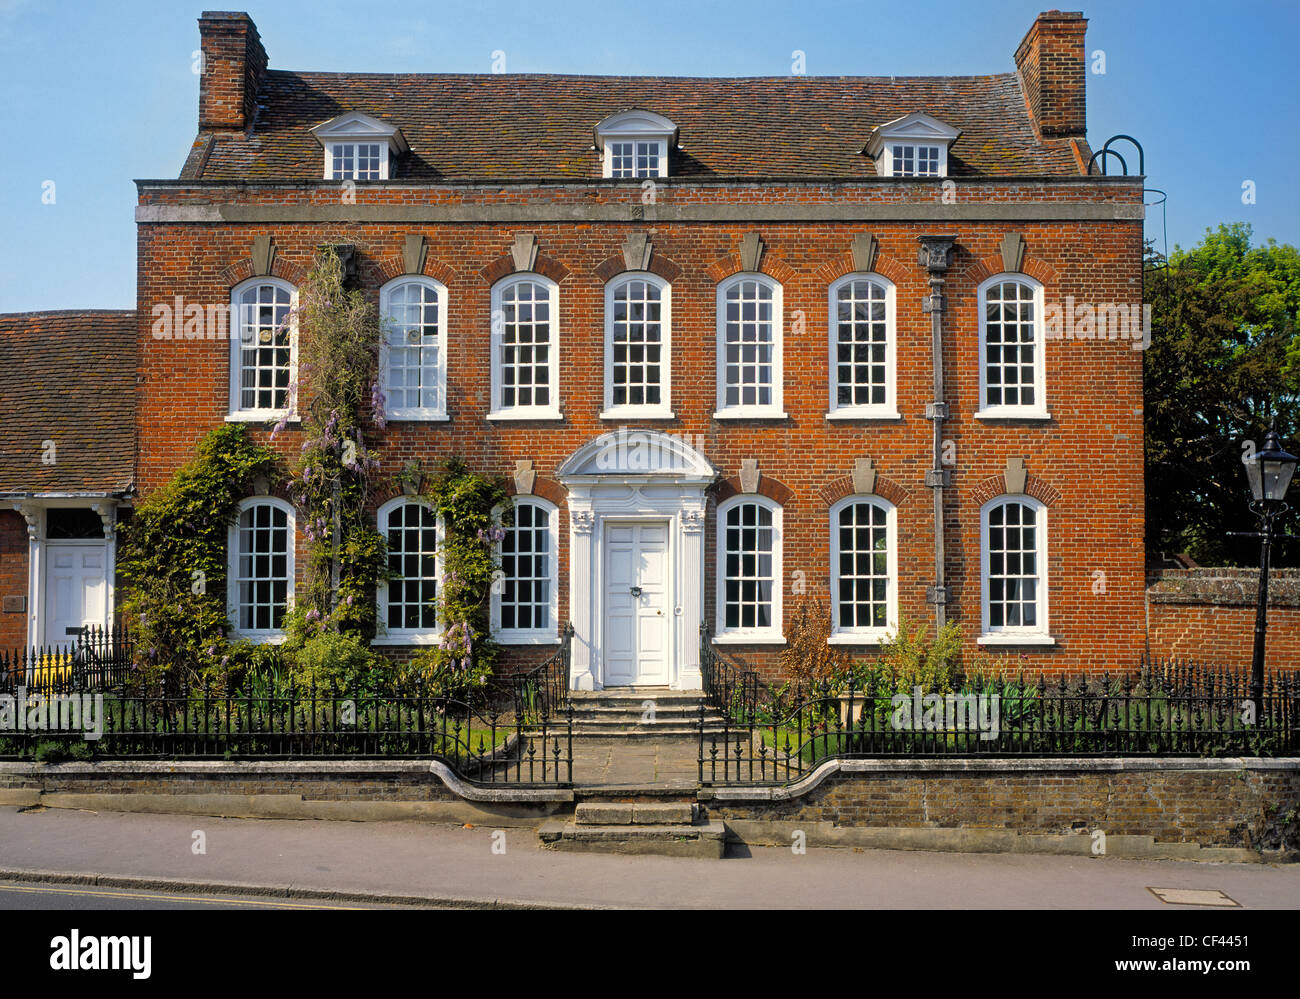 Exterior view of clarence house in thaxted stock photo for Exterior view of house